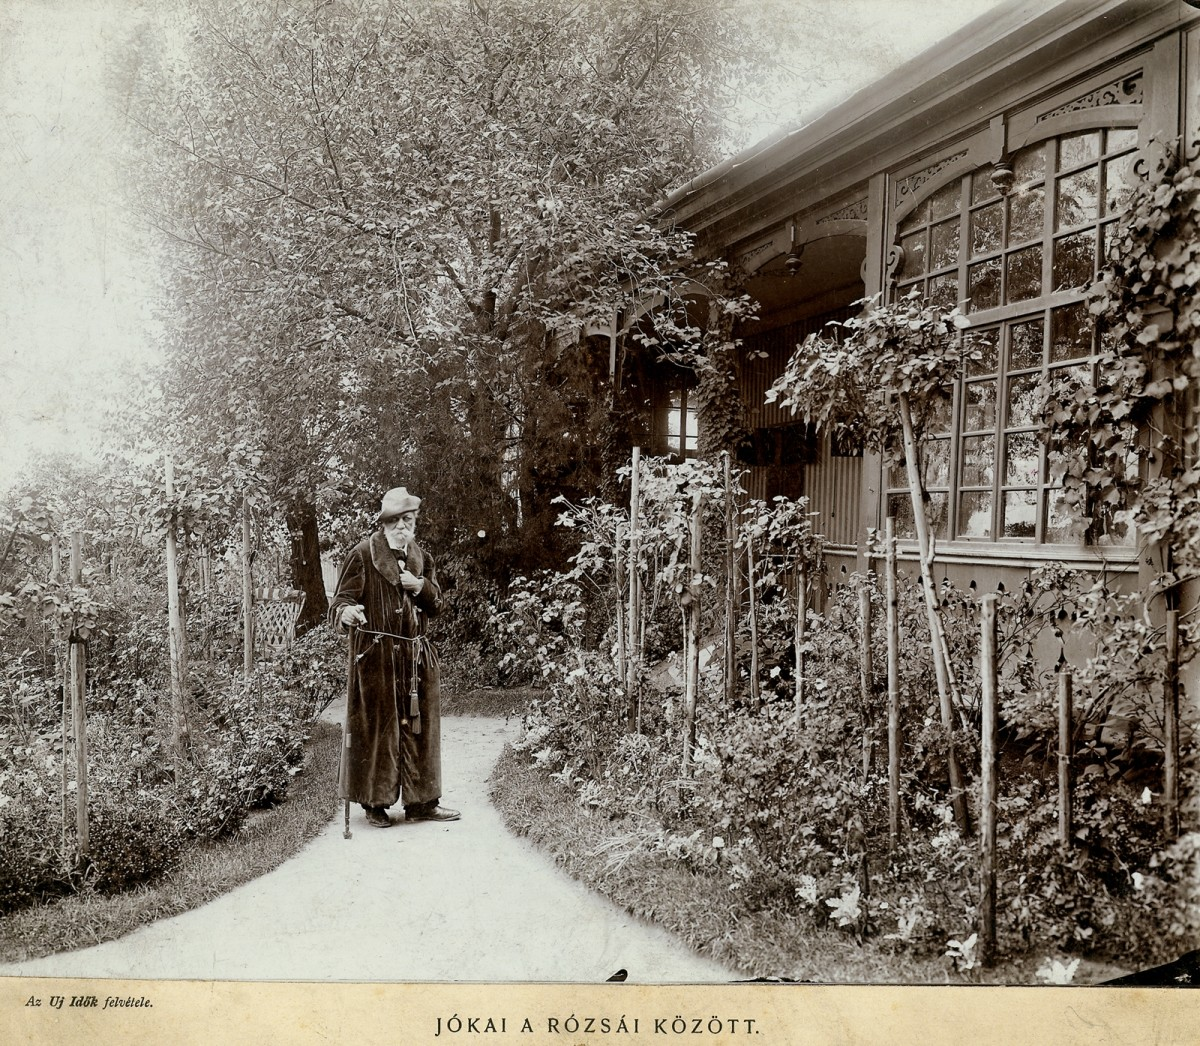 Mór Jókai front of his Villa